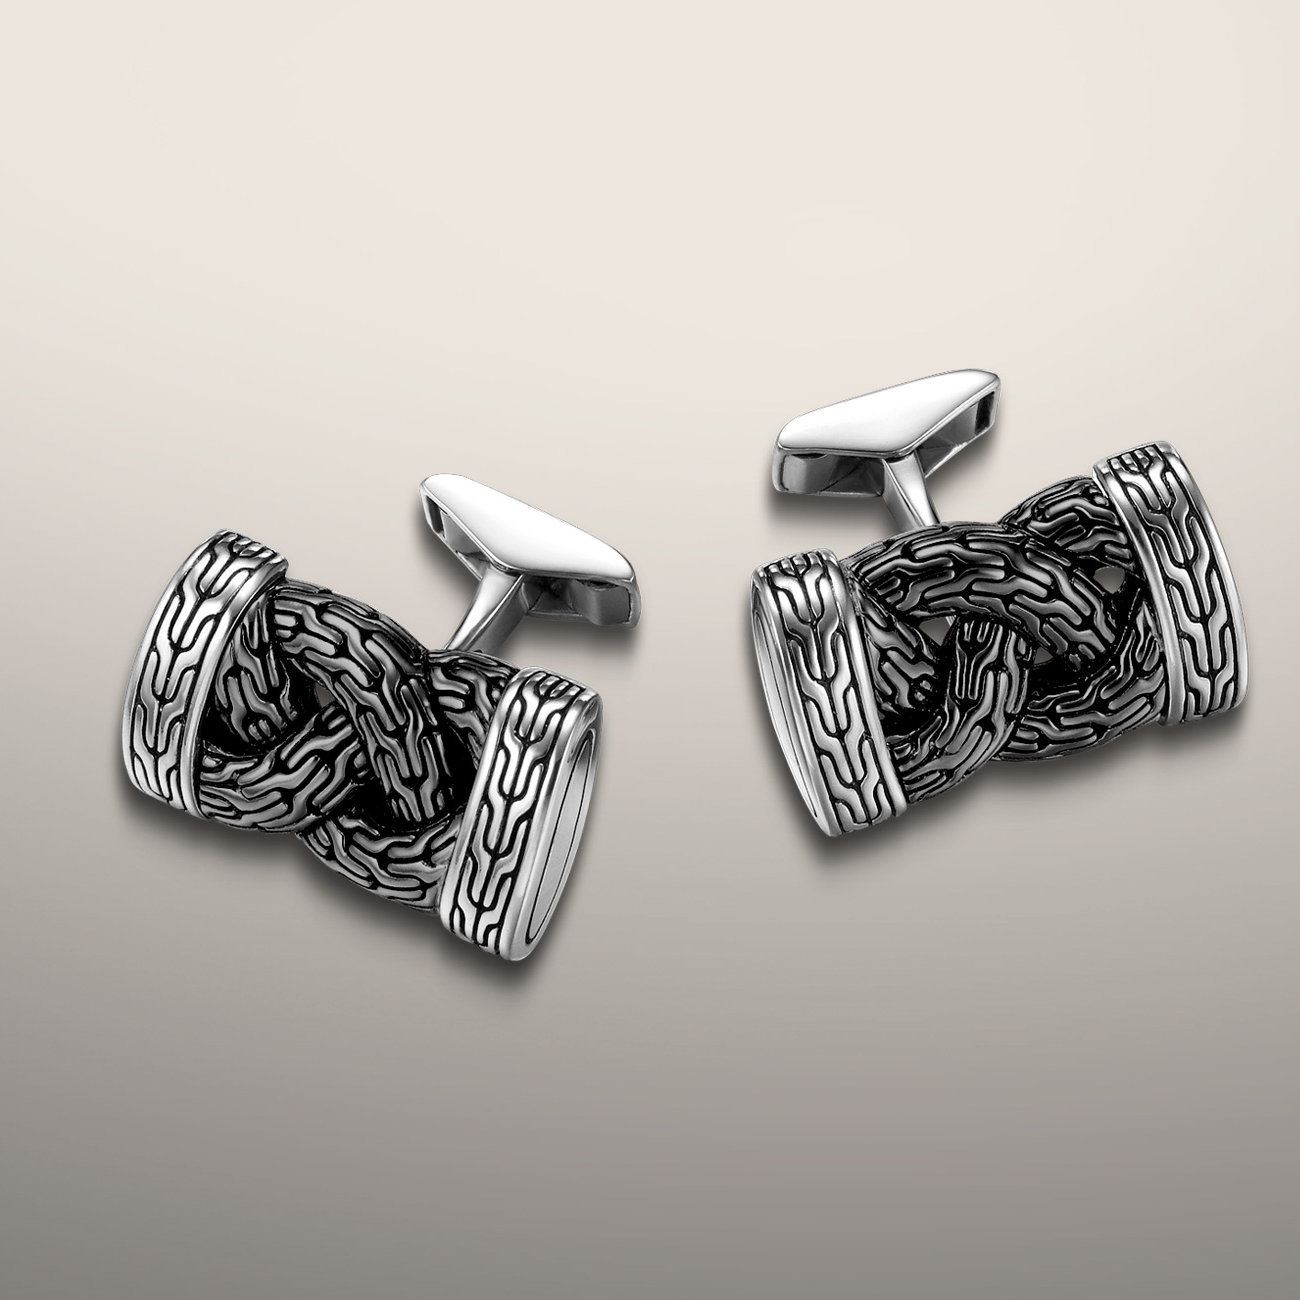 John Hardy two tone polished silver and anodized silver cuff links. Braided classic chain.  $395